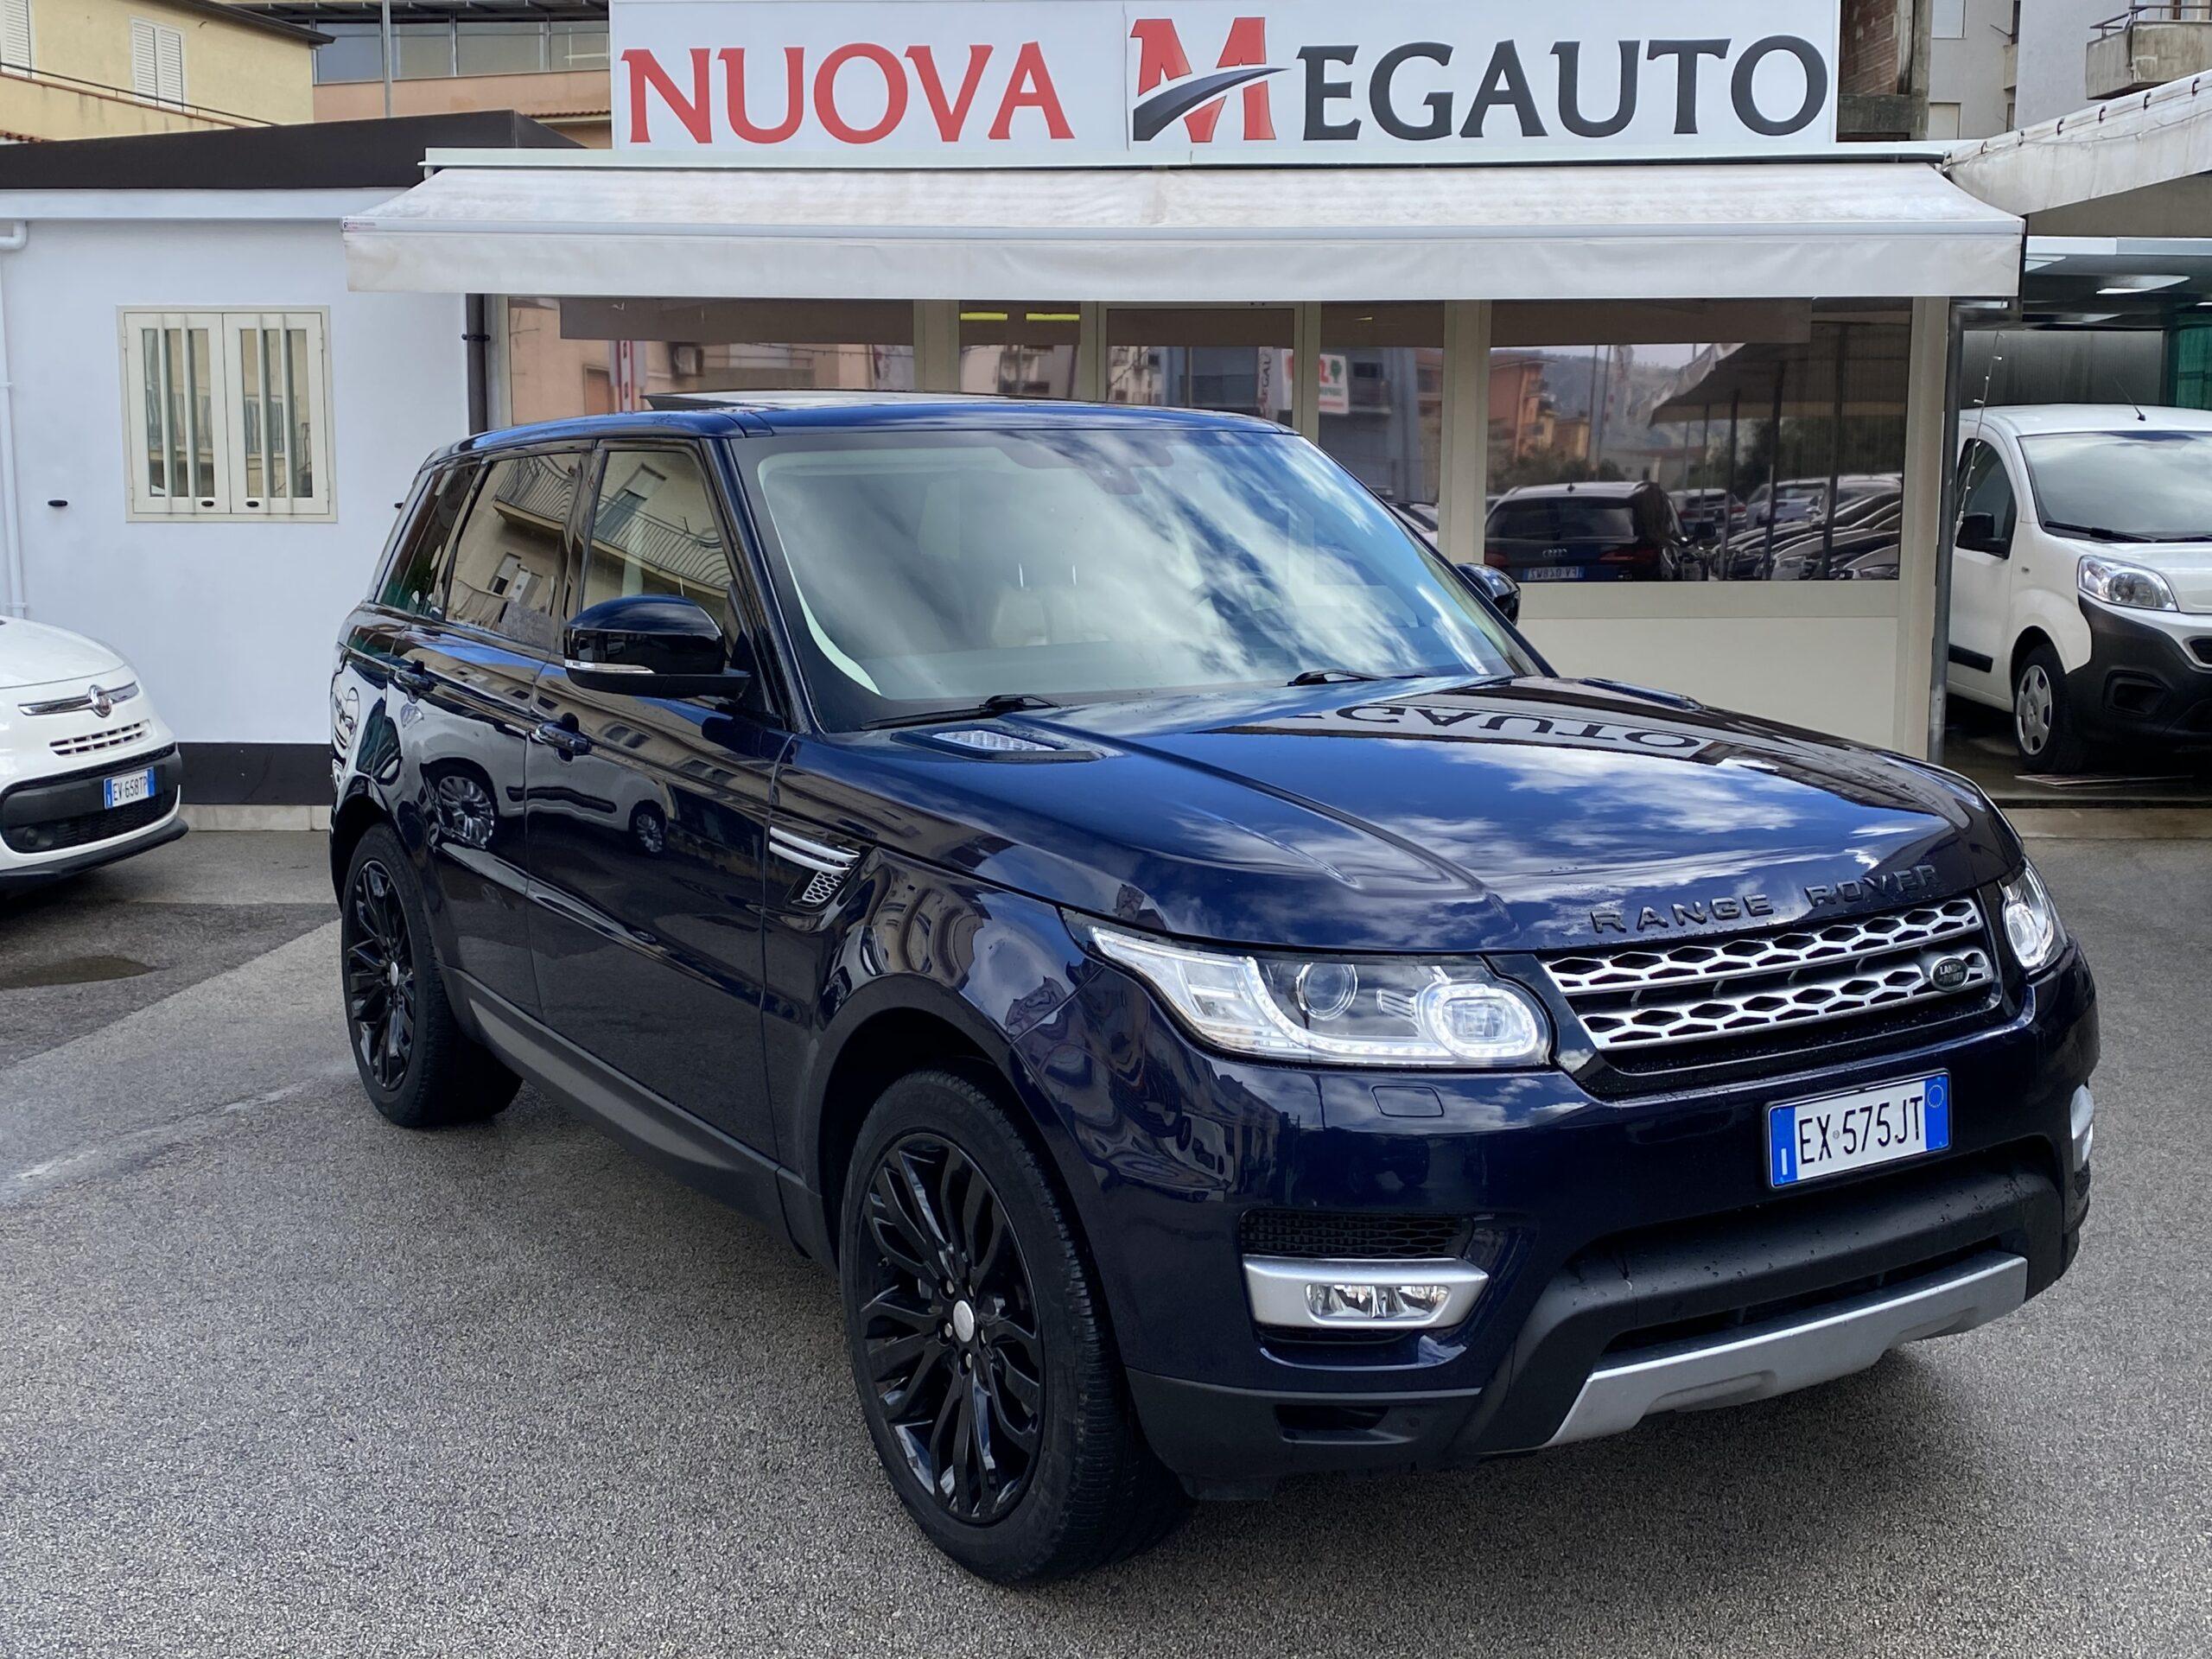 Land Rover Range Rover Sport 3.0 SDV6 Autobiography Dynamic MOTORE NUOVO